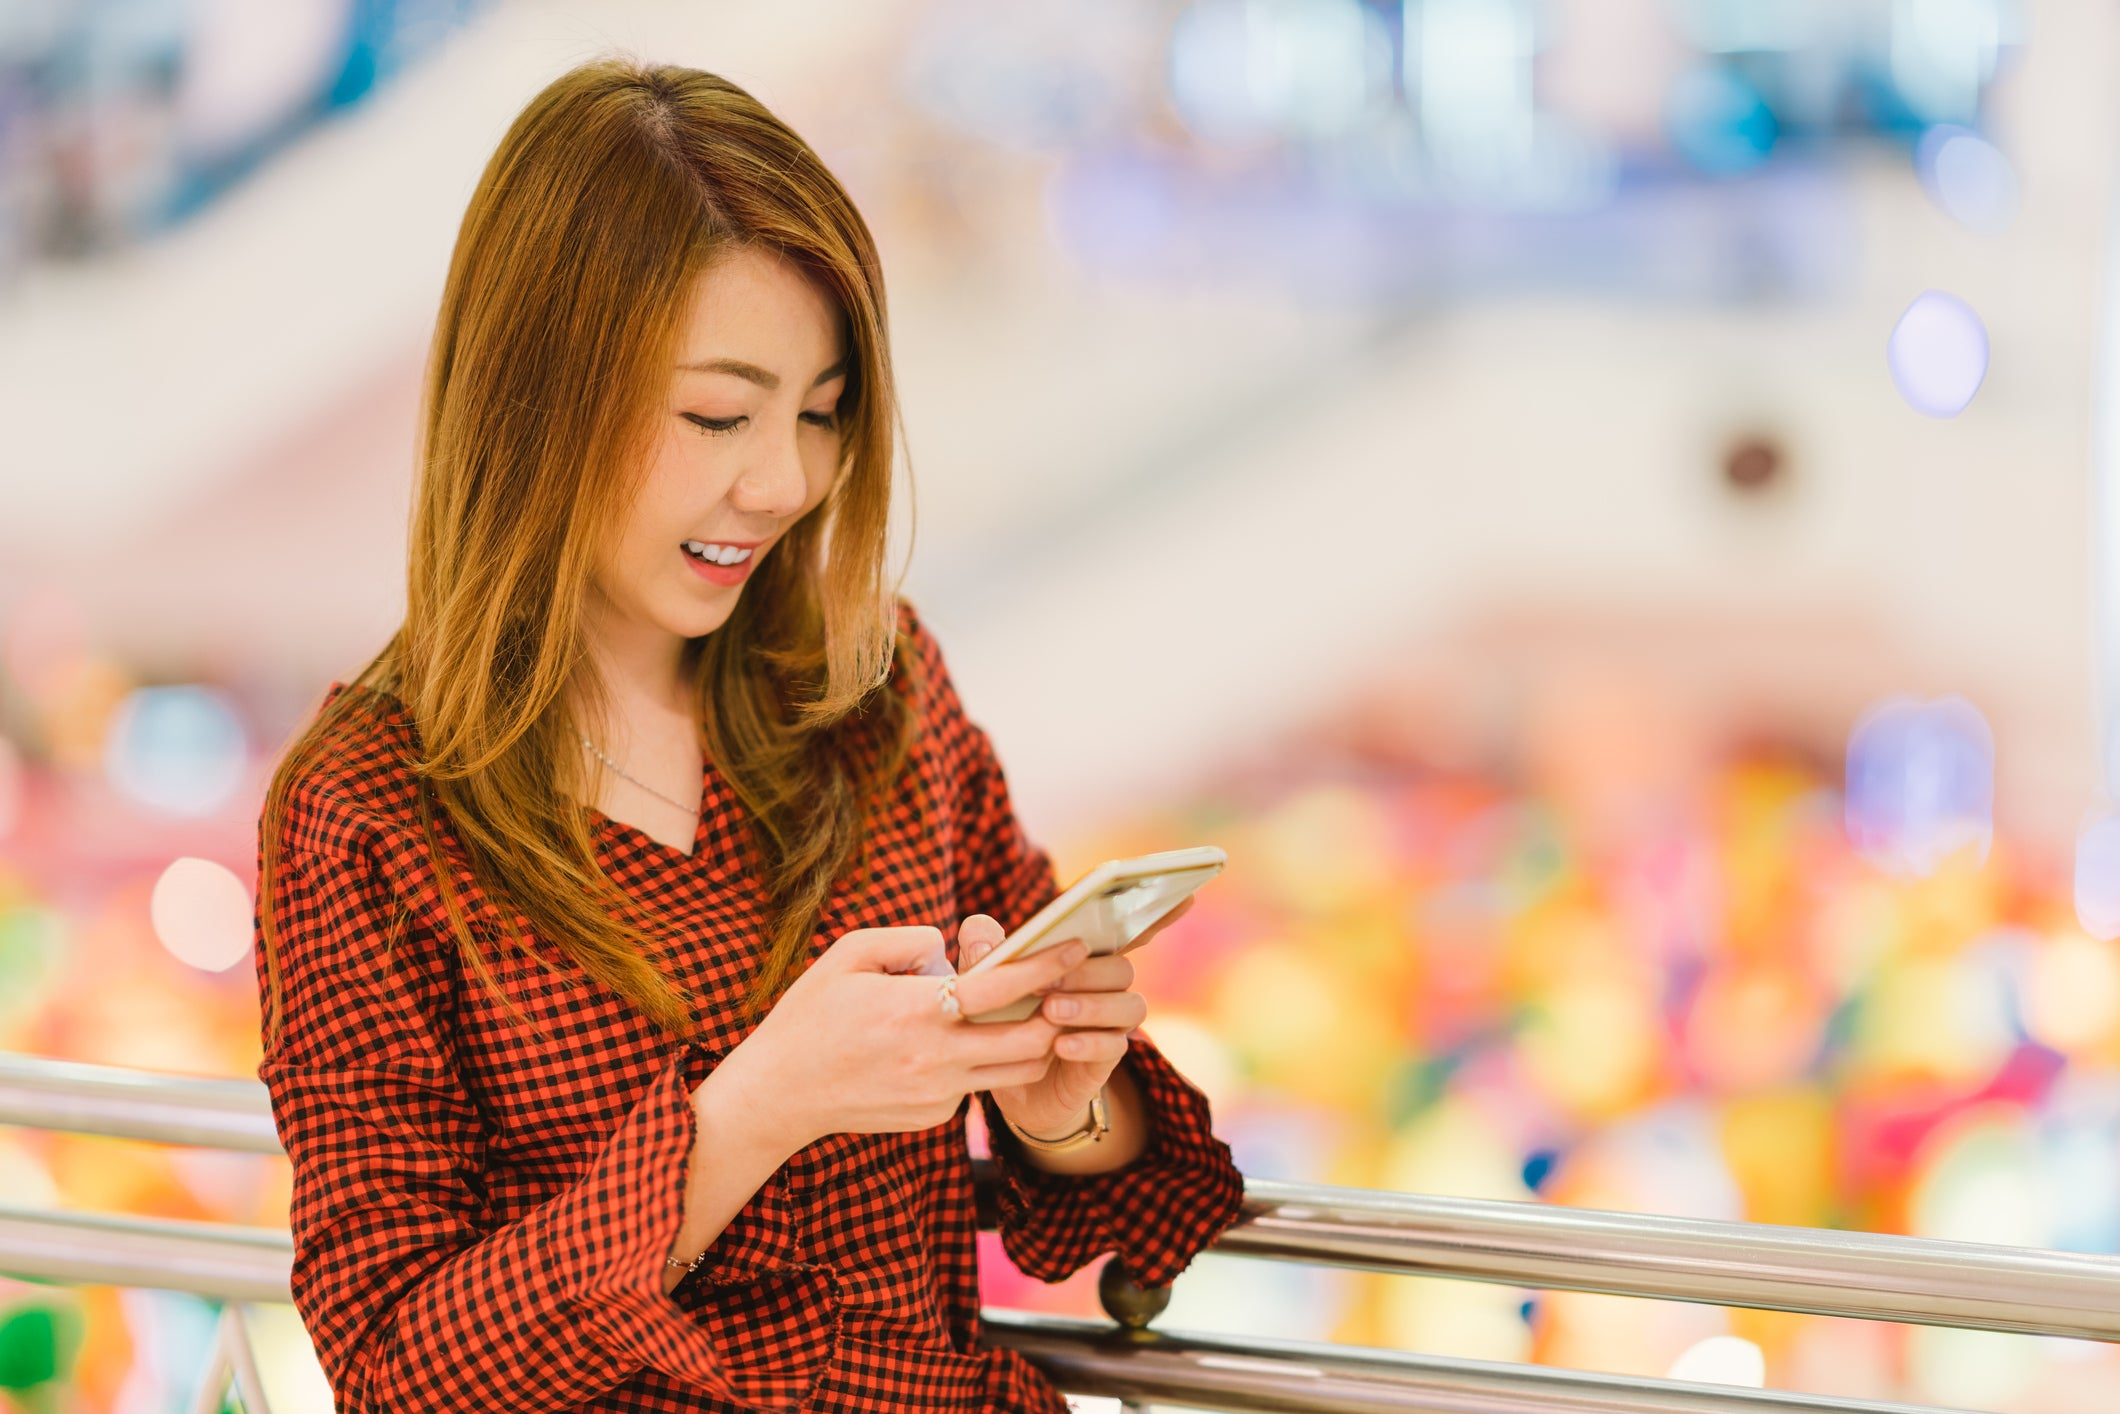 A smiling Asian woman looking at a smartphone